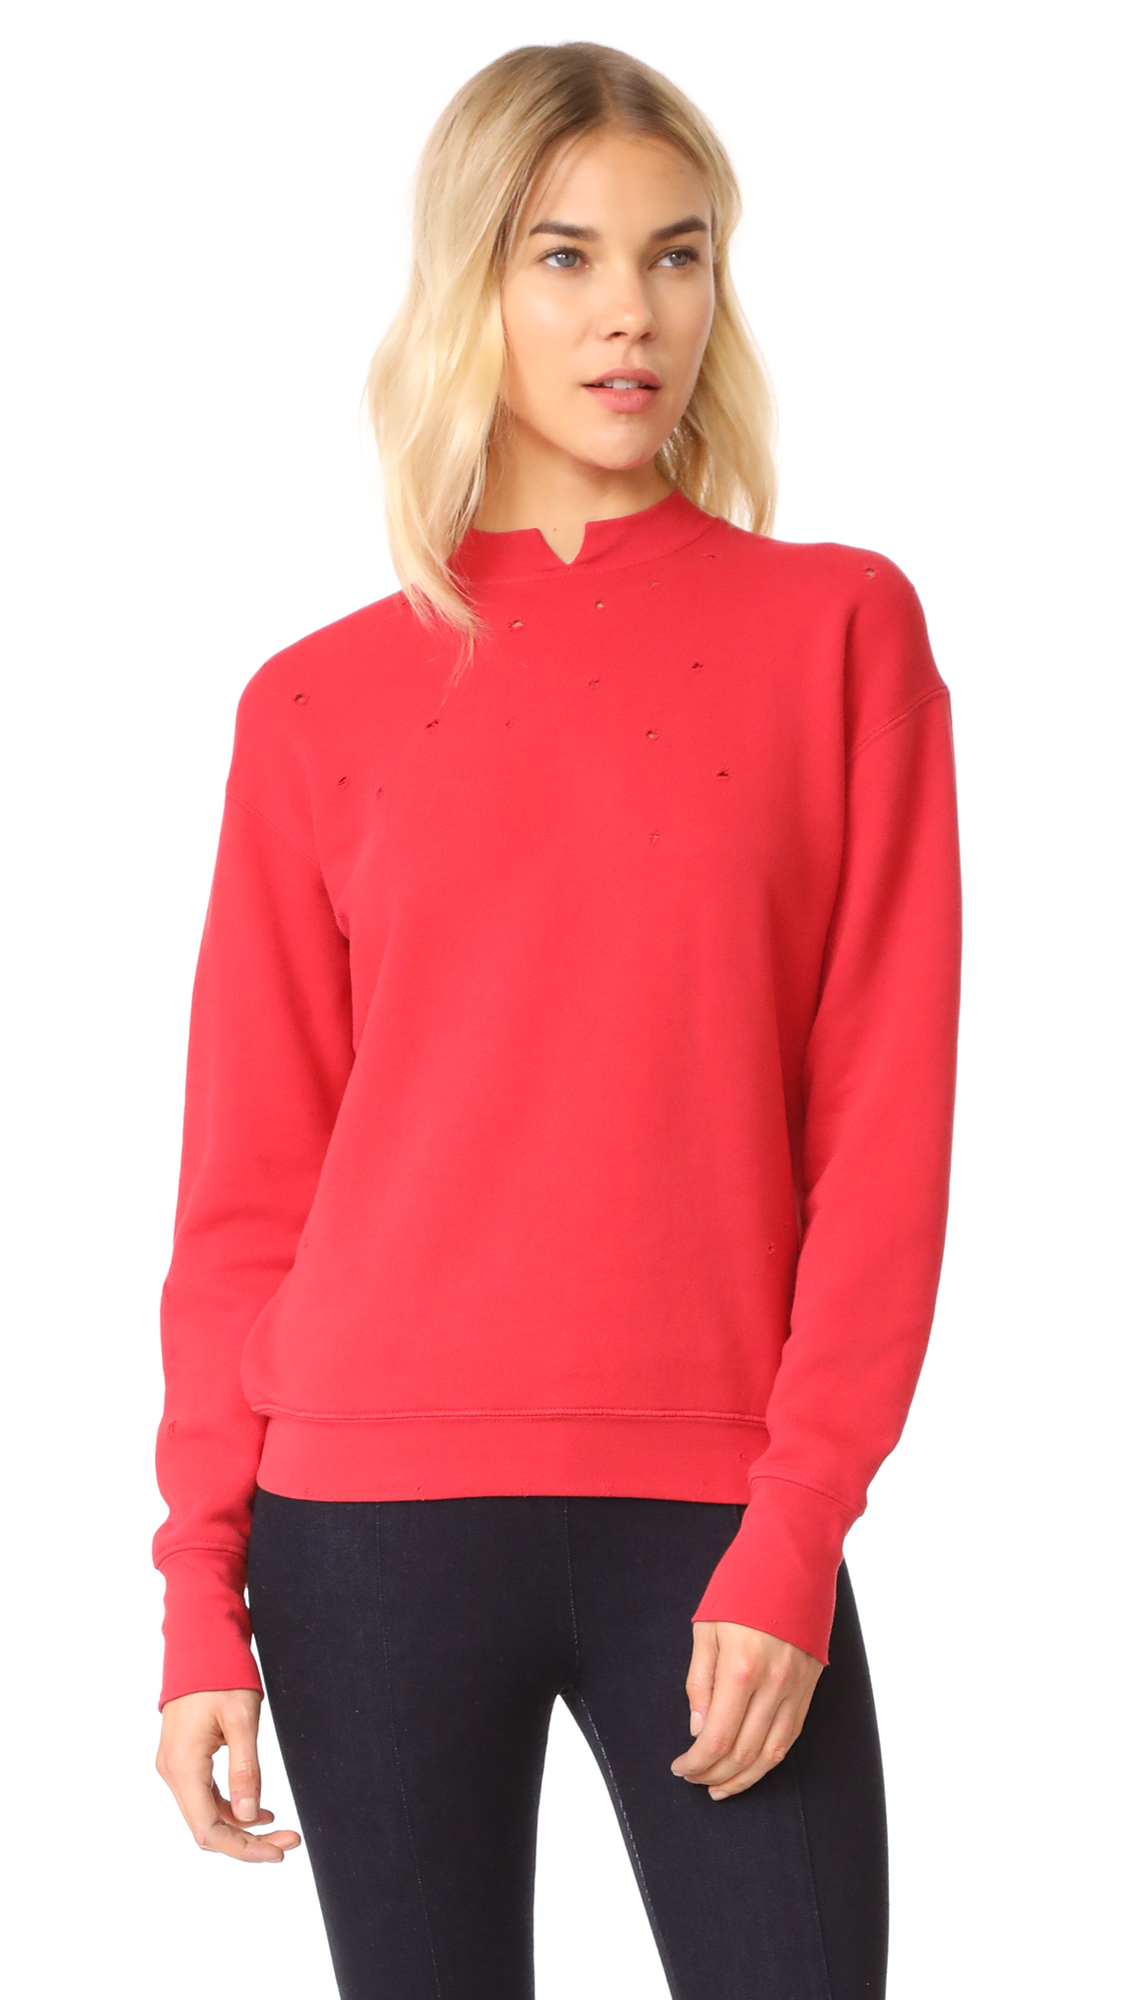 Helmut Lang Slash Neck Sweatshirt - Amaryllis